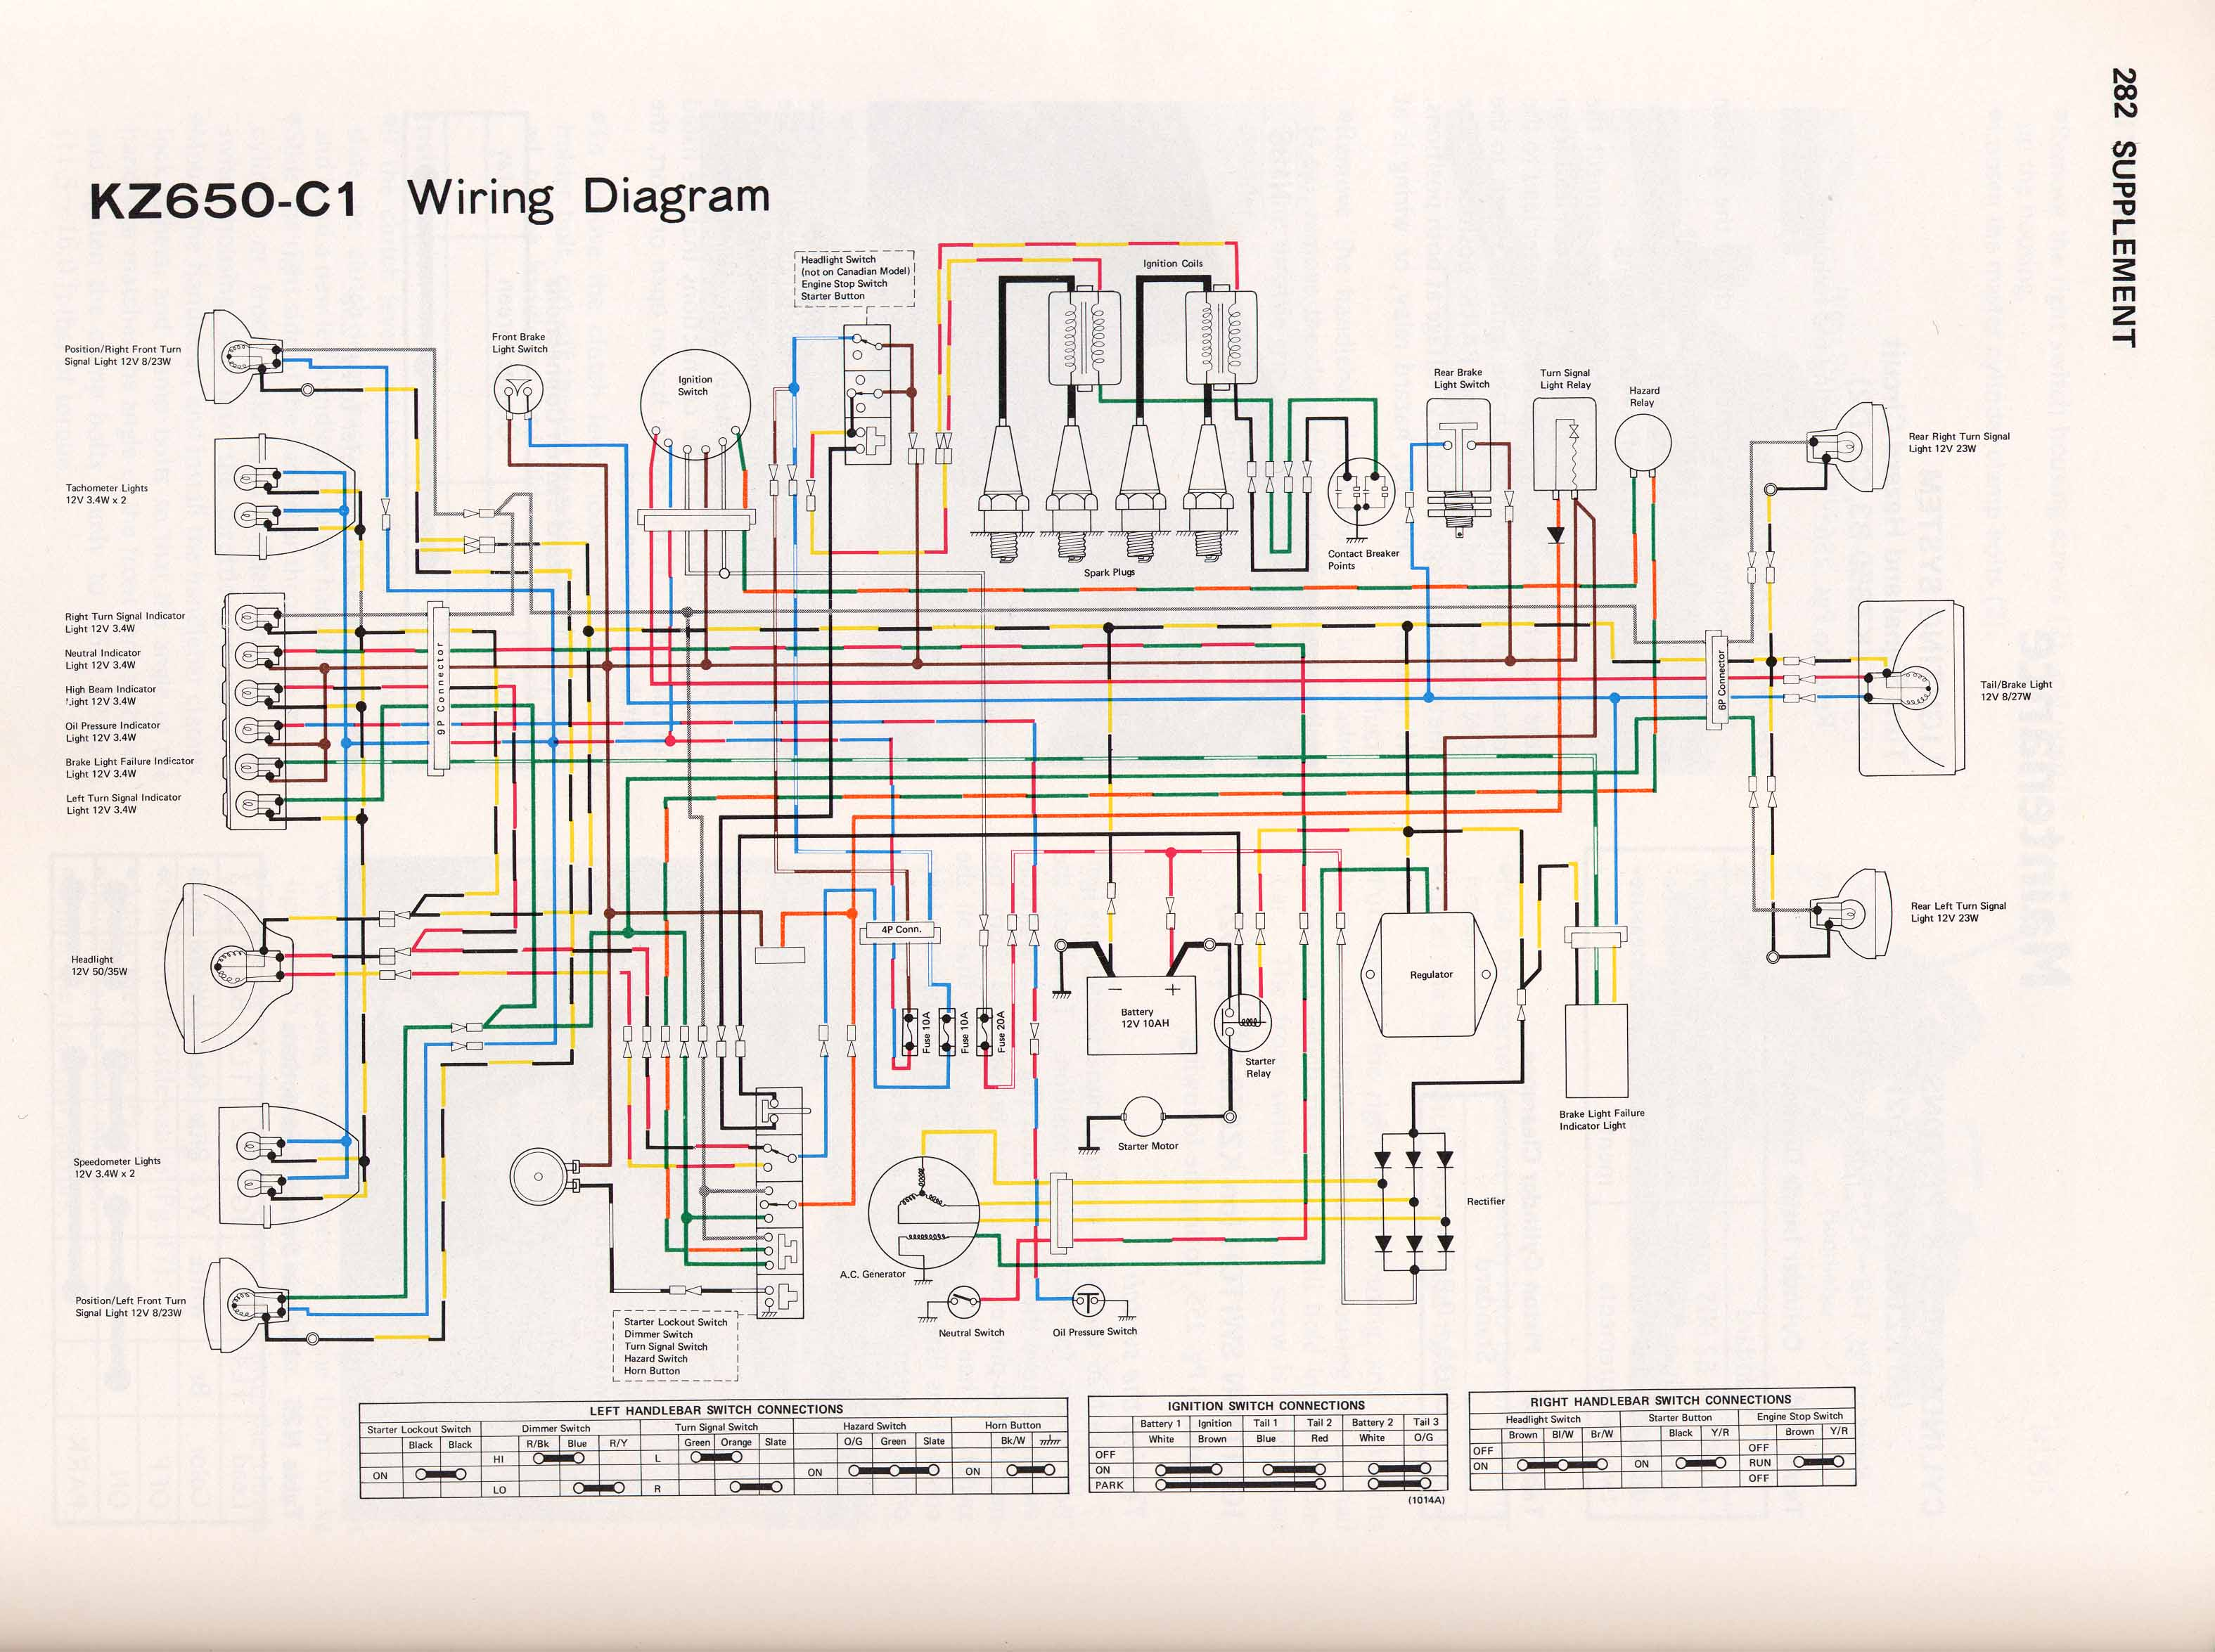 Kz650info Wiring Diagrams Minimal Motorcycle Diagram Kz650 C1